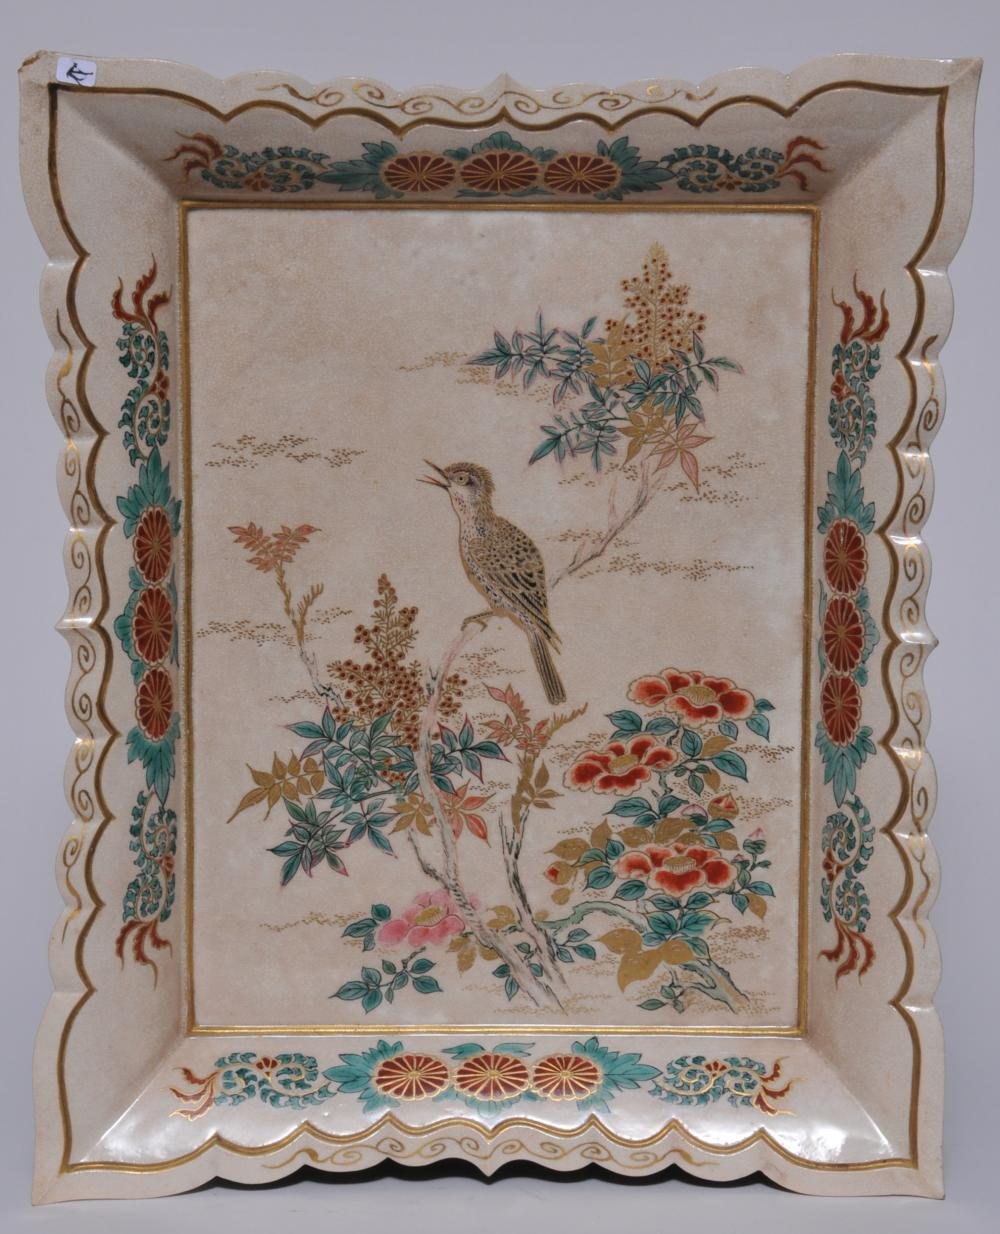 """Large Japanese 19th century Satsuma earthenware pottery tray with bird on a branch decoration. Chrysanthemum flower borders. Impressed circle mark on back. Chip on one corner. 15-1/2"""" x 12-1/2""""."""